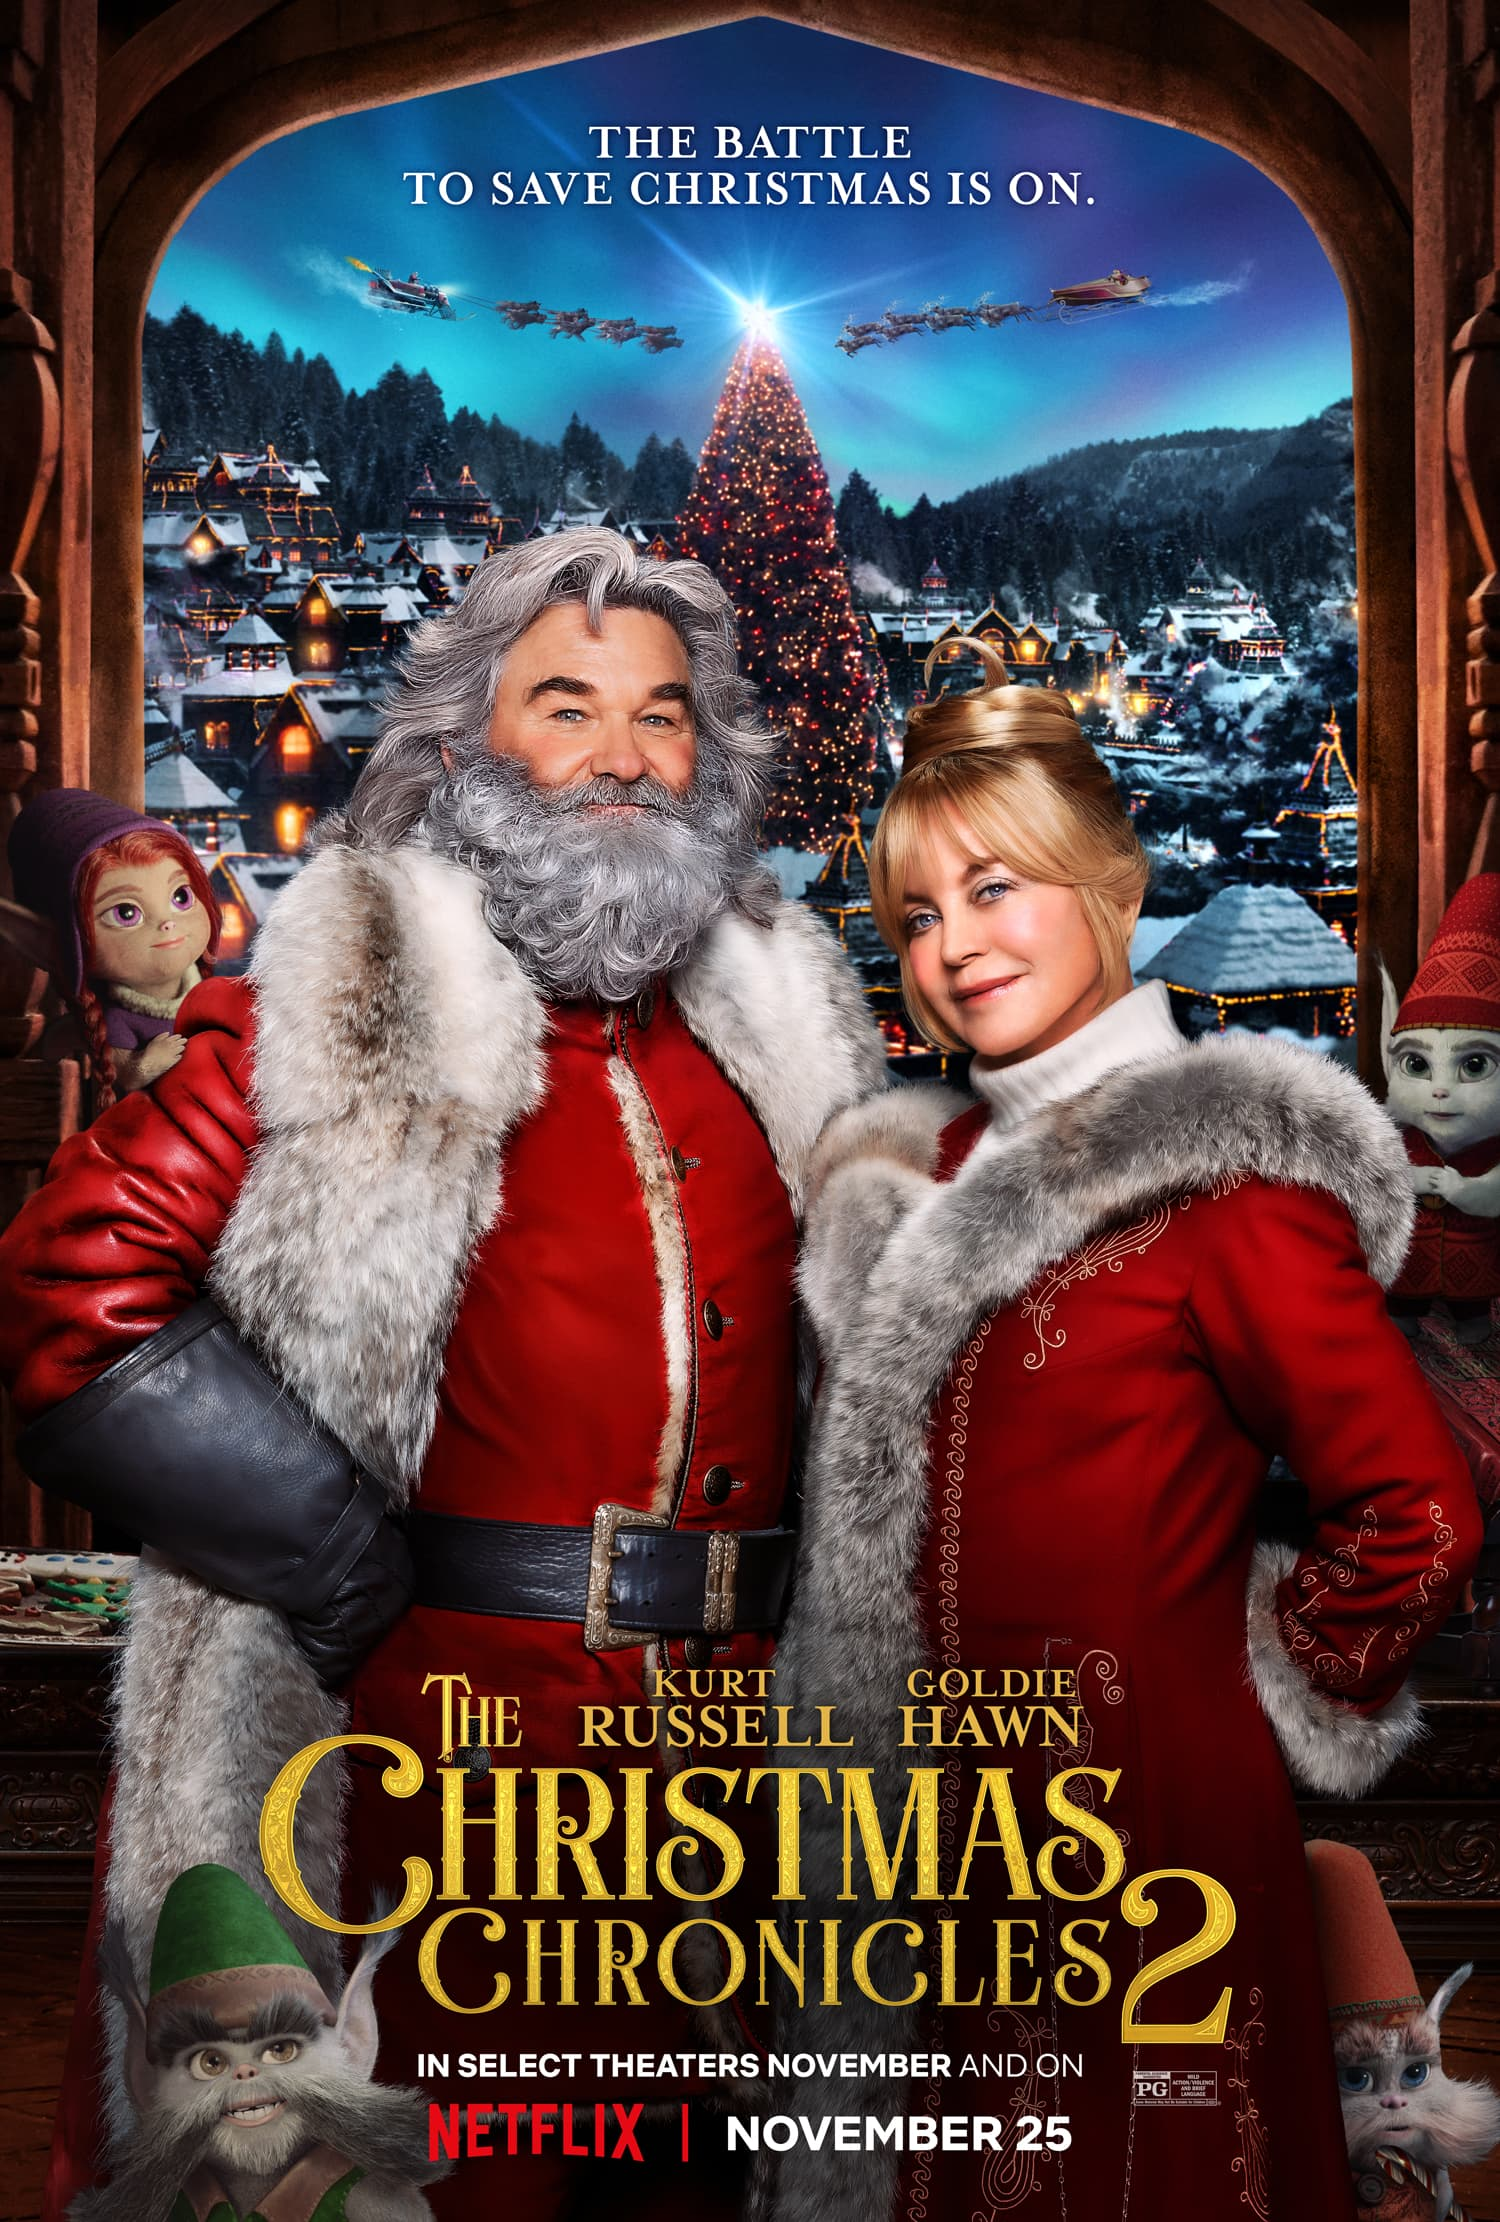 The Christmas Chronicles 2 Spoiler-Free Movie Review